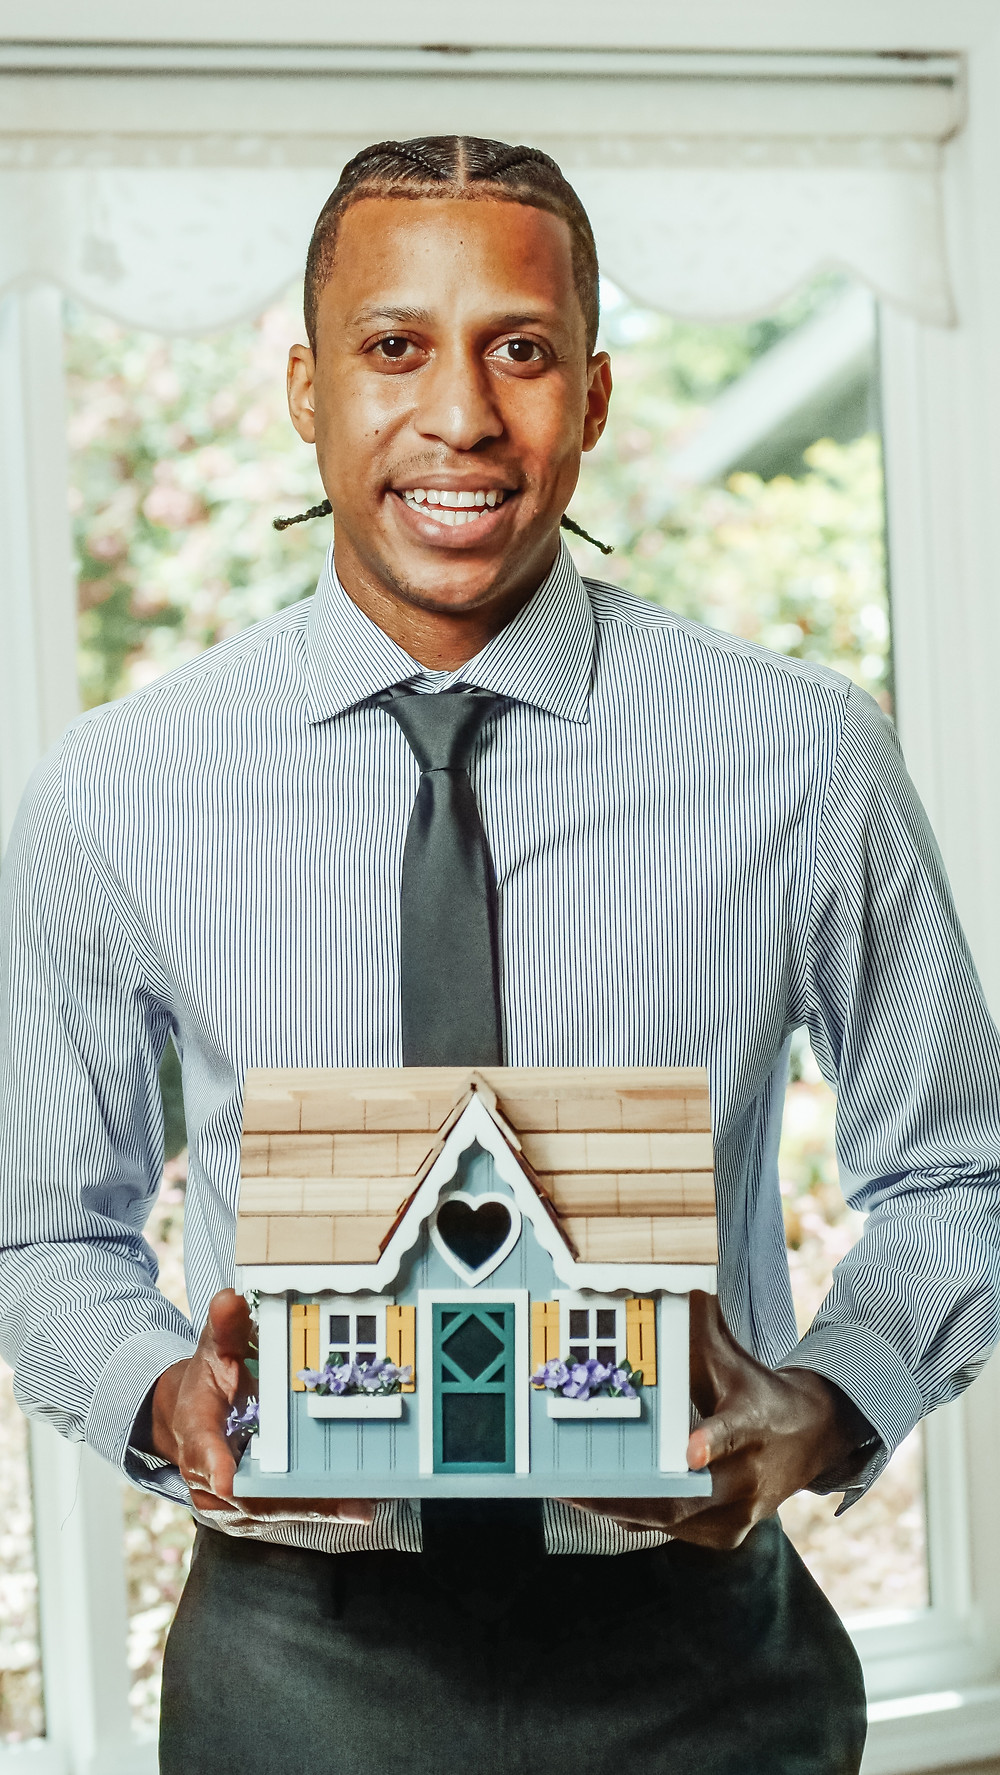 a black man in a striped shirt with dark grey tie smiling and holding a house model in front of him